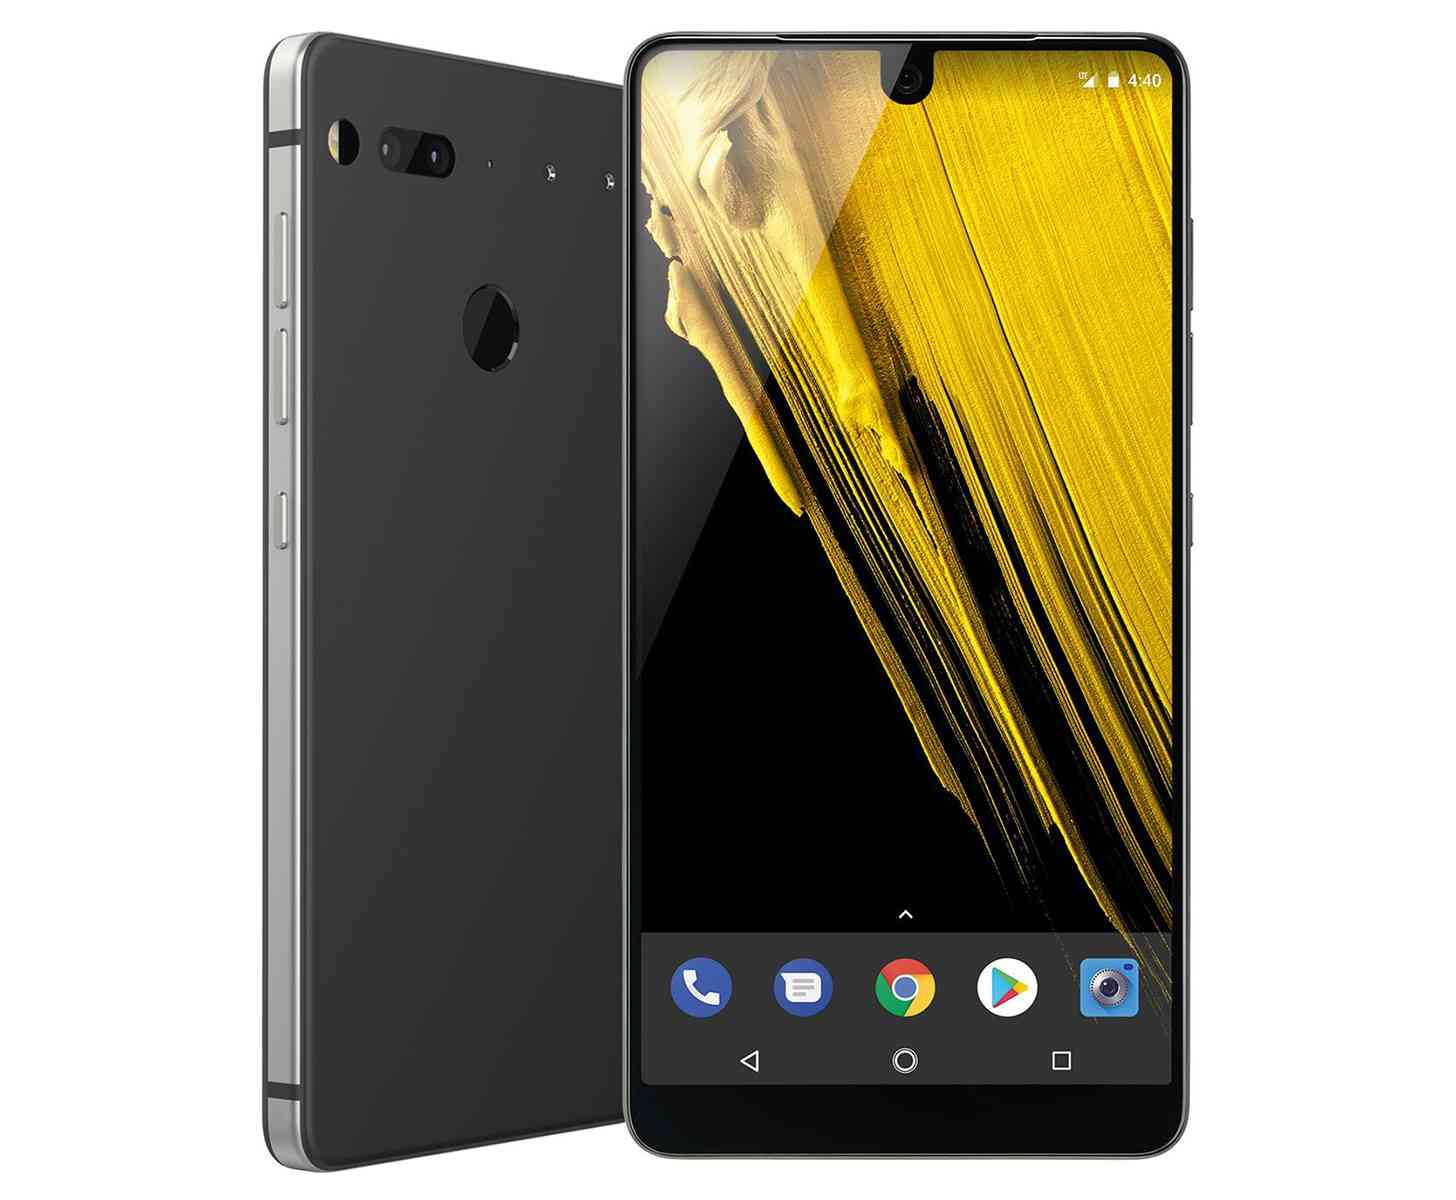 Essential Phone adds three new colors in Spring Collection